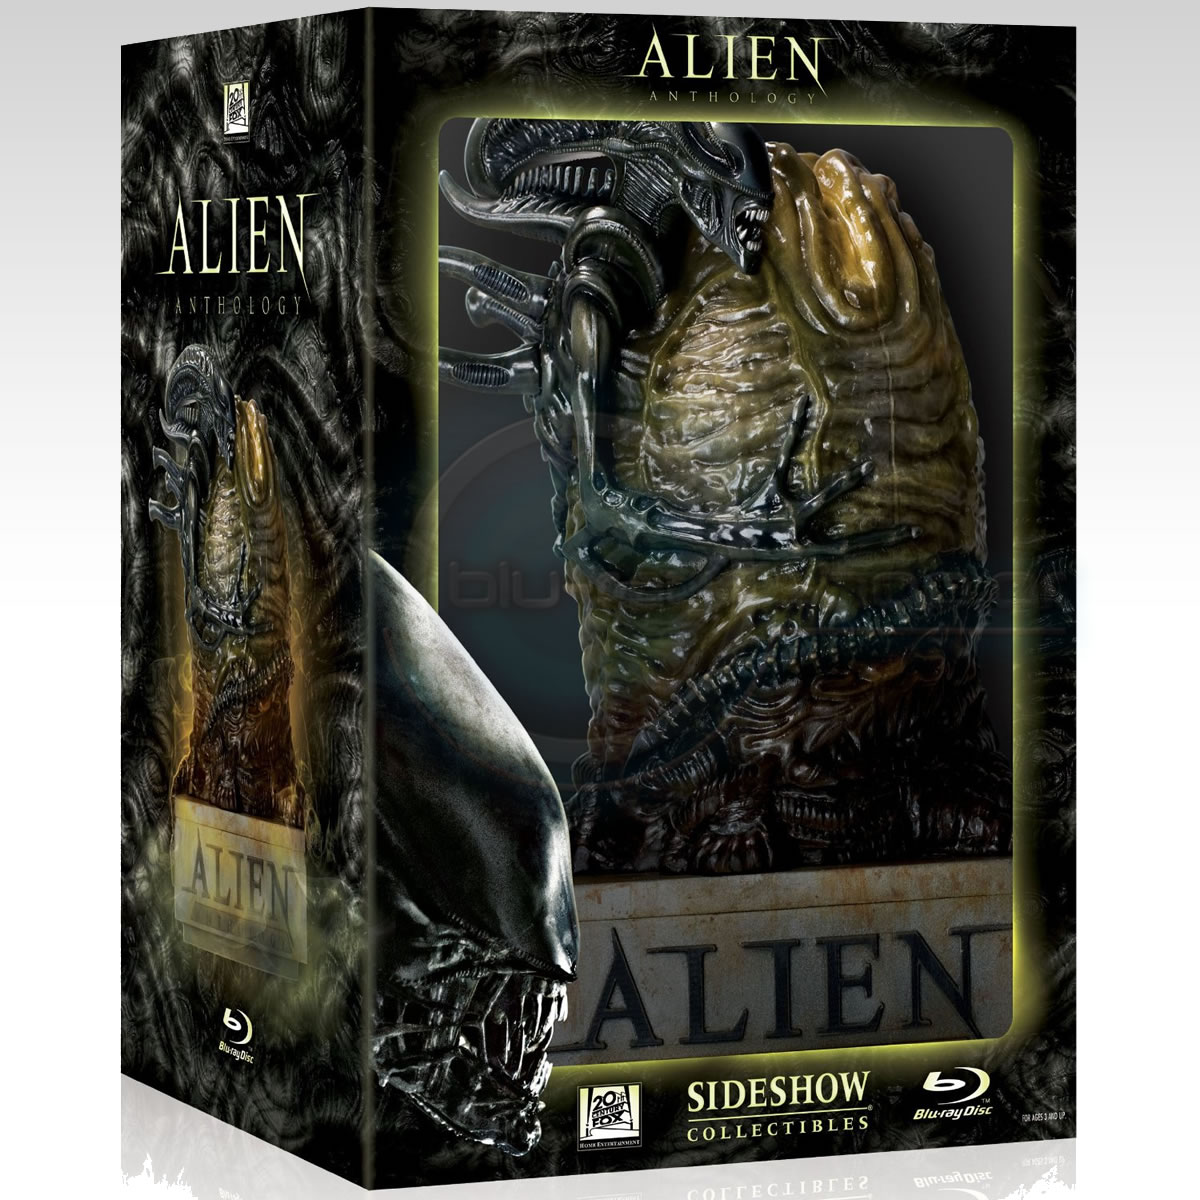 ALIEN ANTHOLOGY - LIMITED EDITION EGG ������������ [��������� �� ���������� ����������] (6 BLU-RAYs)